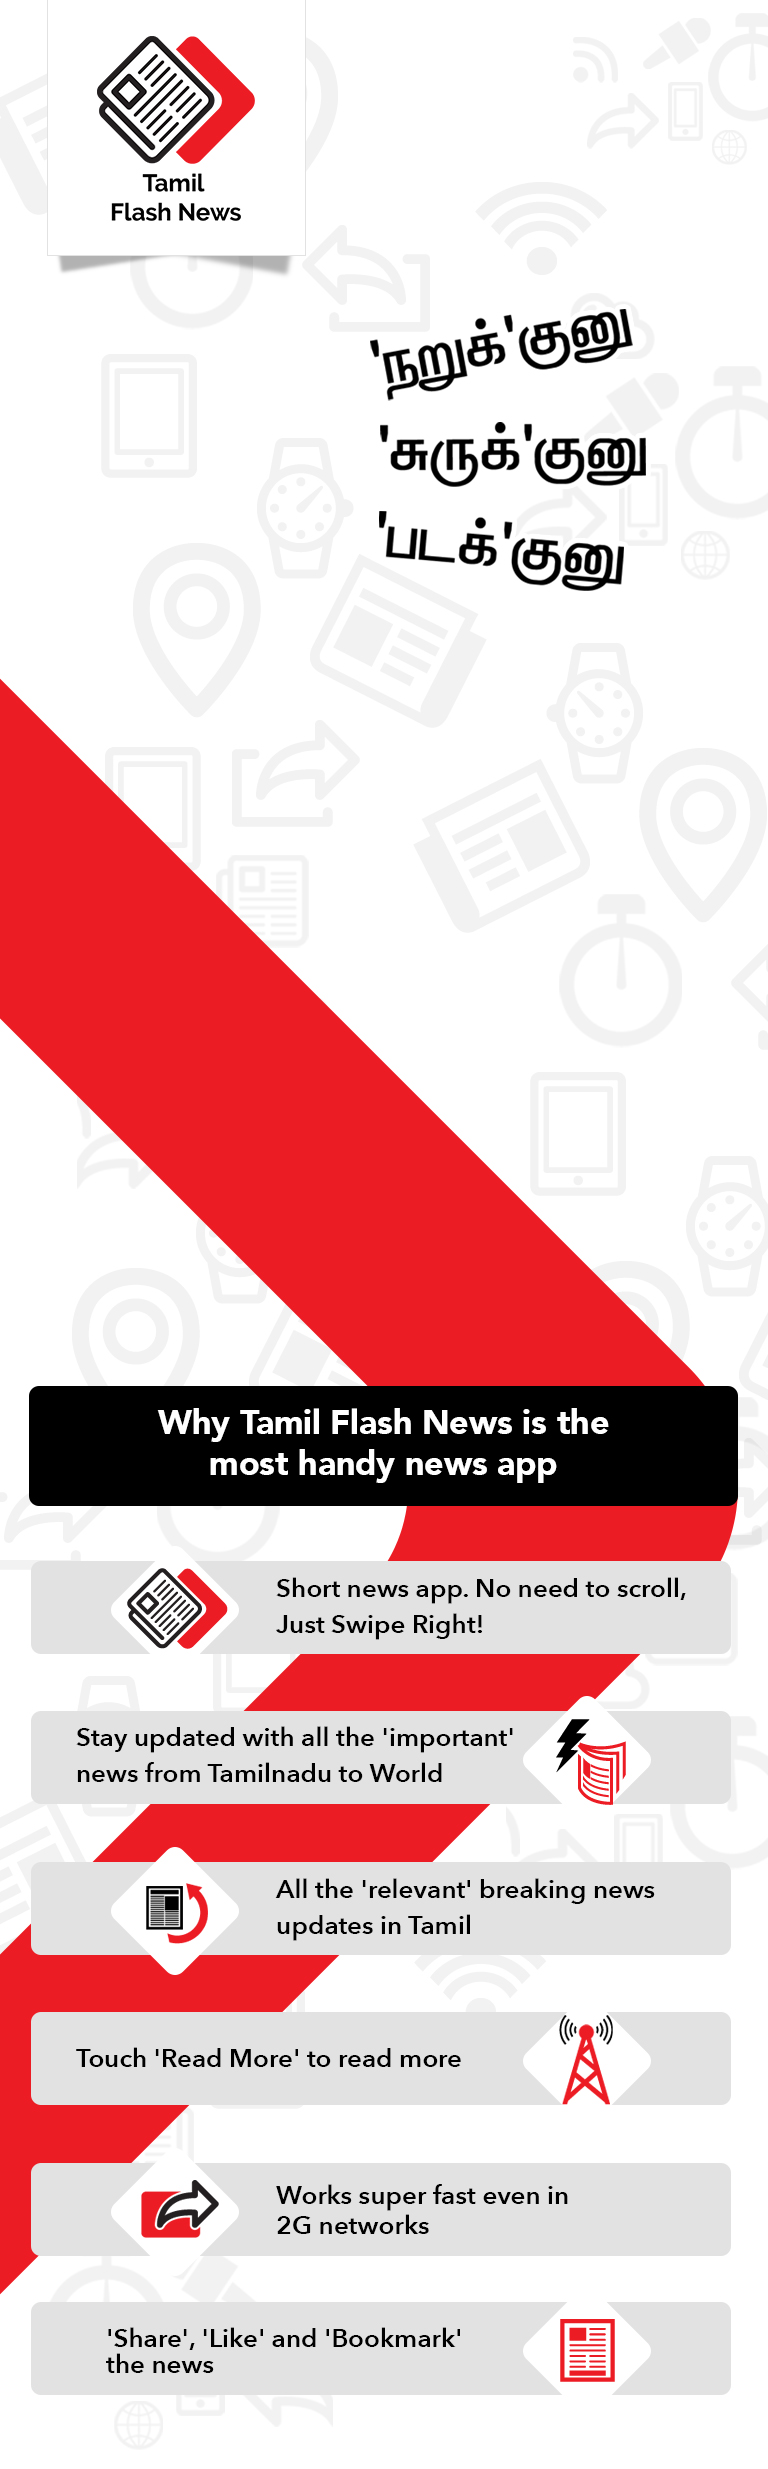 Tamil Flash News